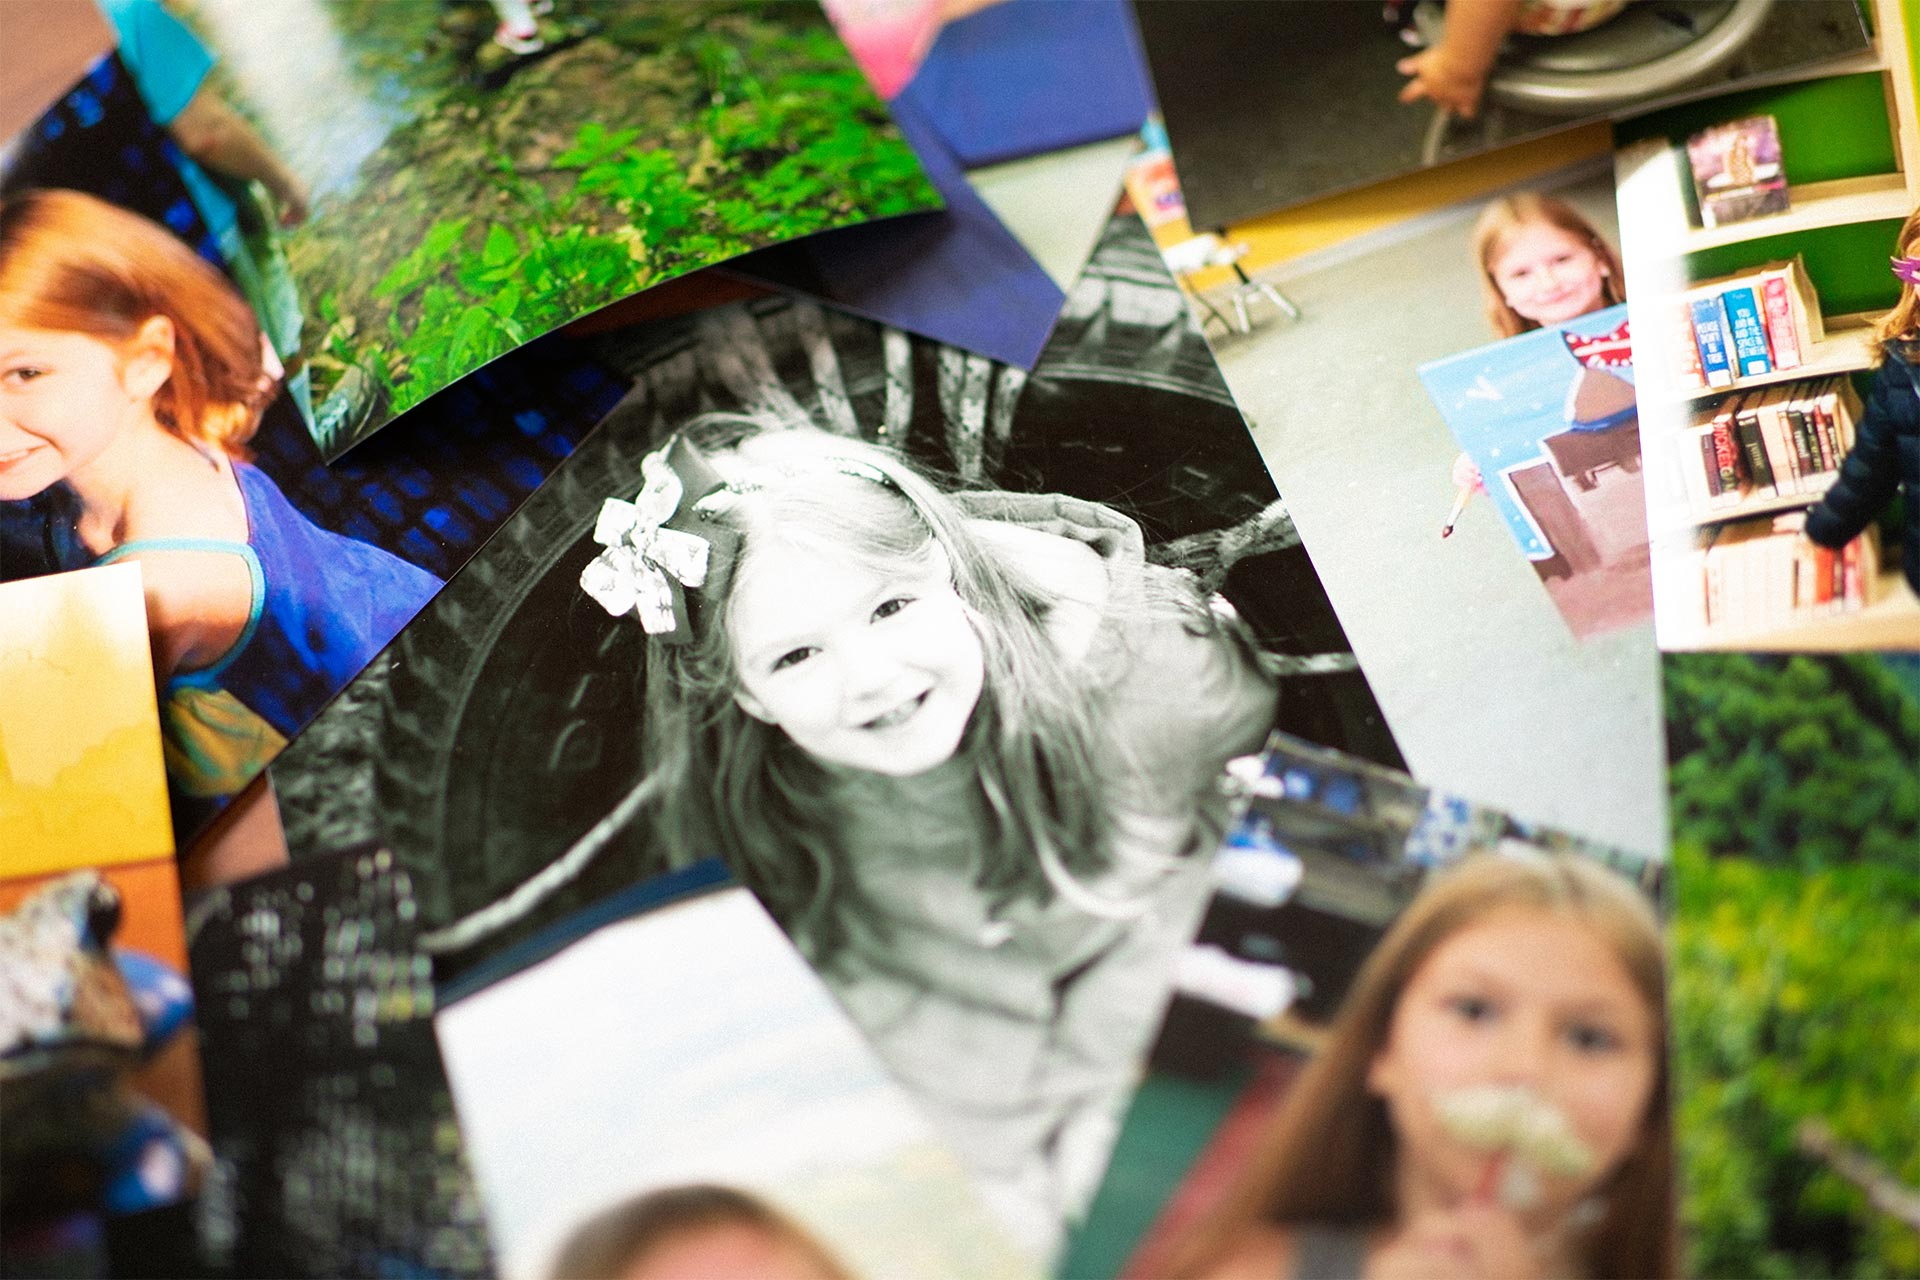 Photos of Audrey scattered on a table